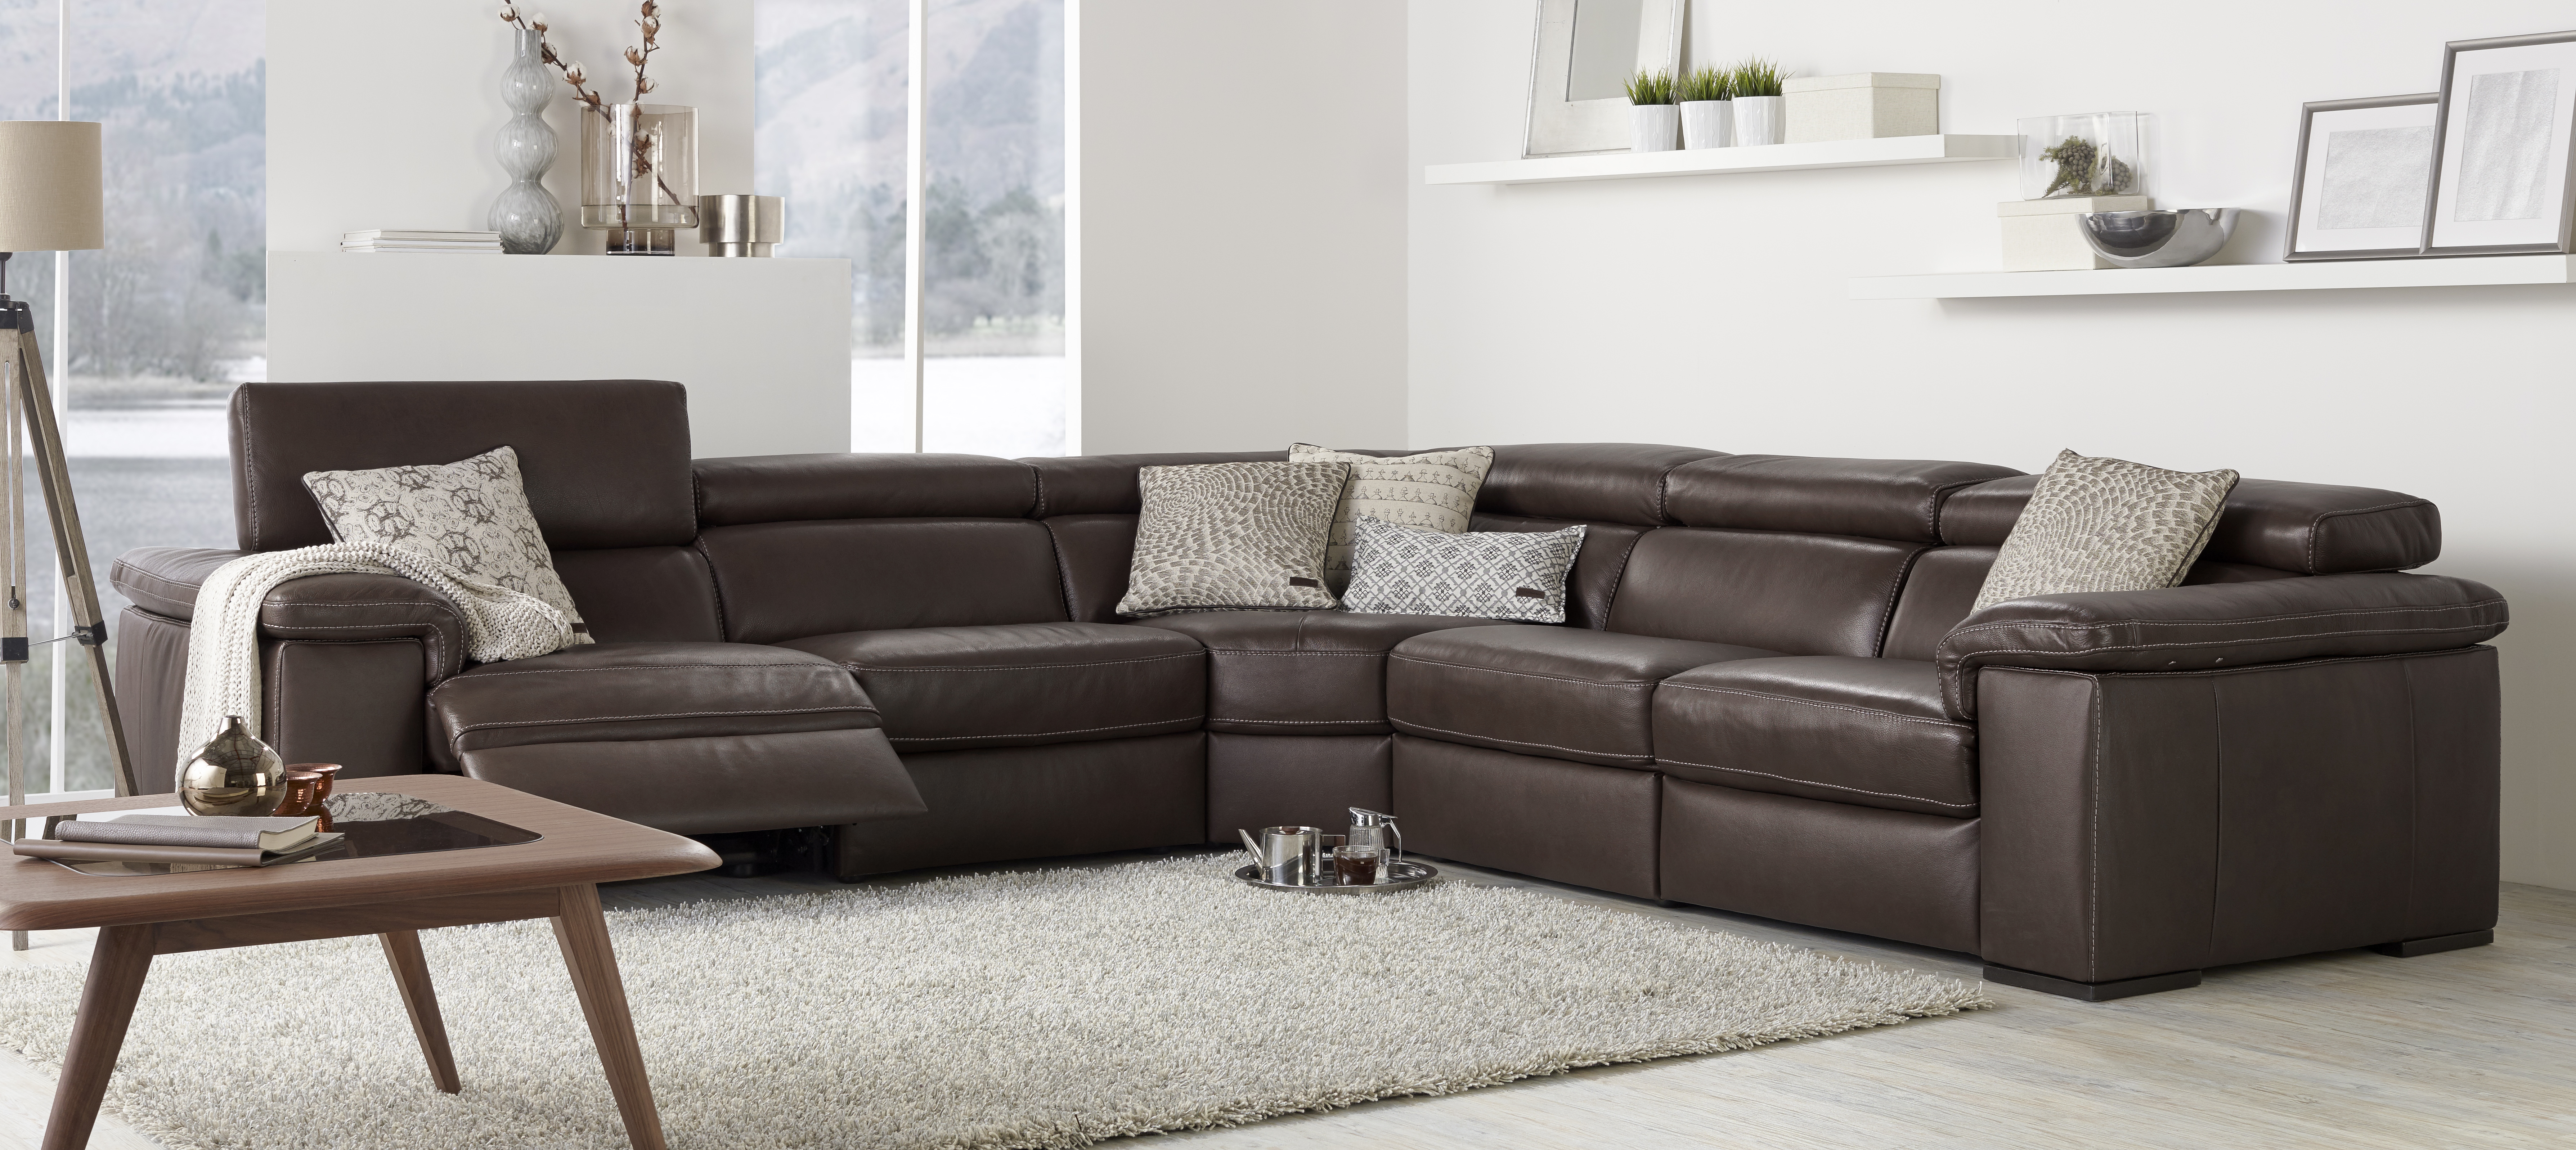 Sofa Italiano Outlet Natuzzi Sofa Outlet Natuzzi Sofa Outlet Uk Refil Sofa